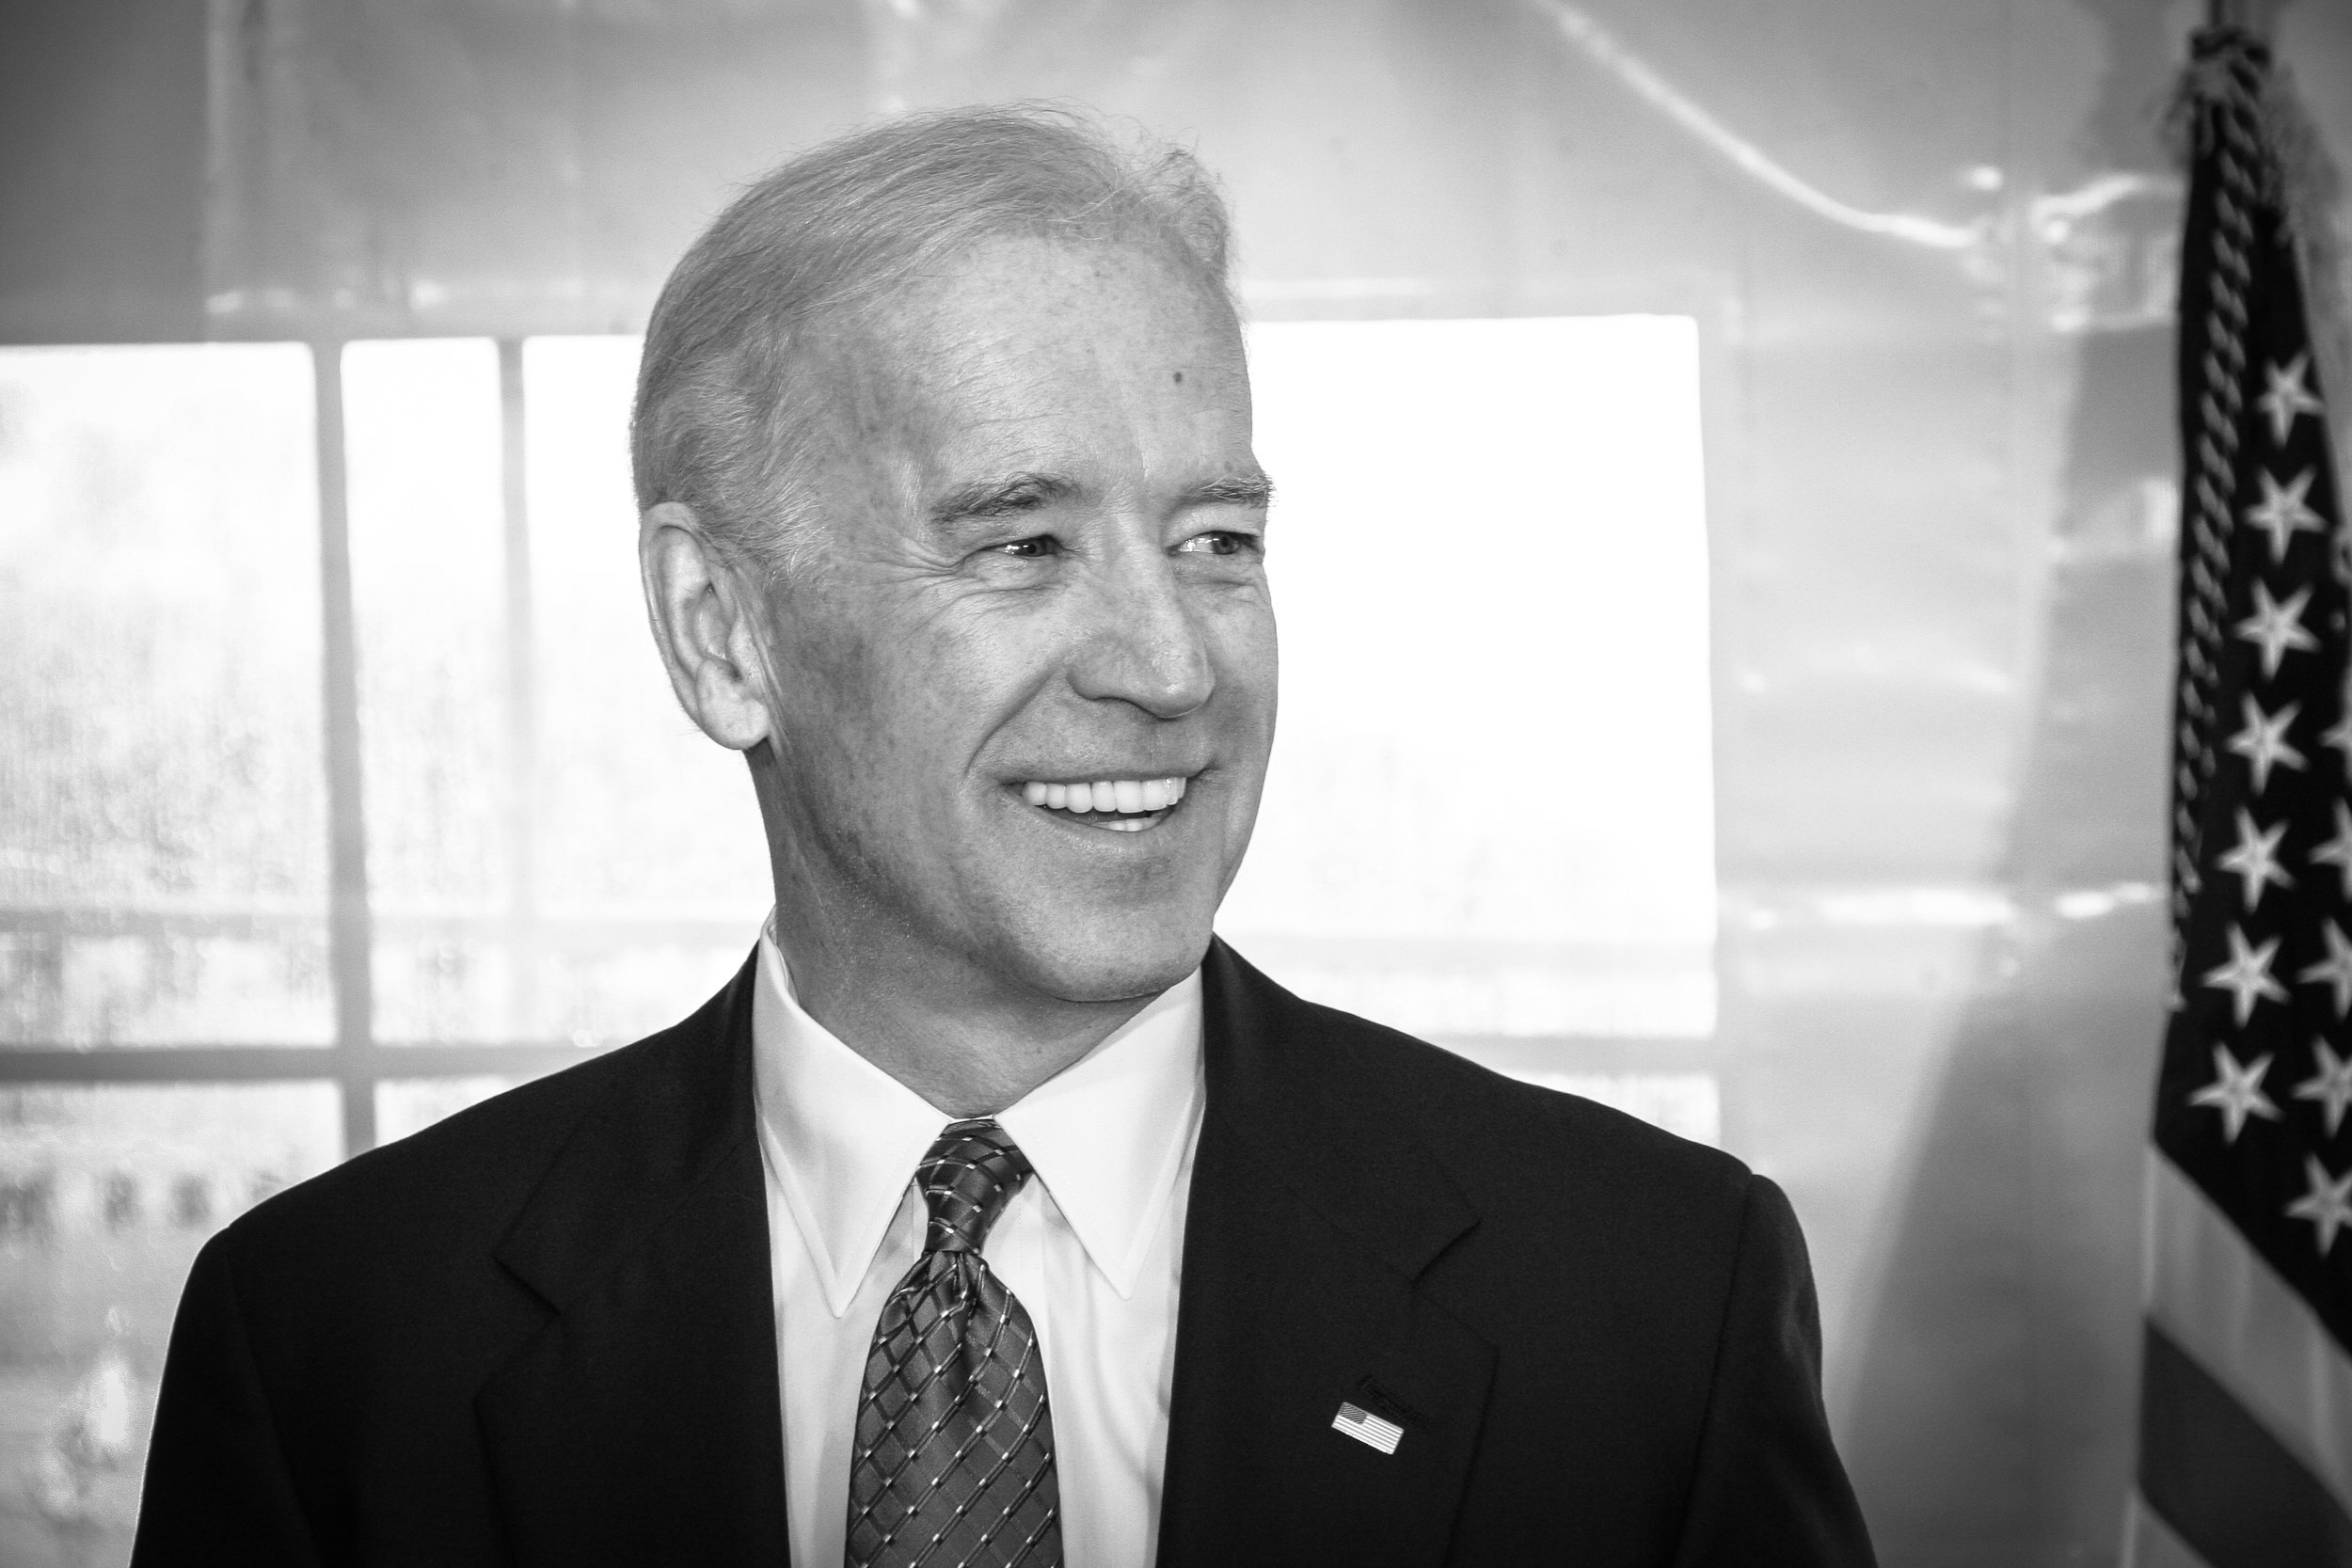 Vice President of the United States, Joe Biden, in washington, DC (2011).